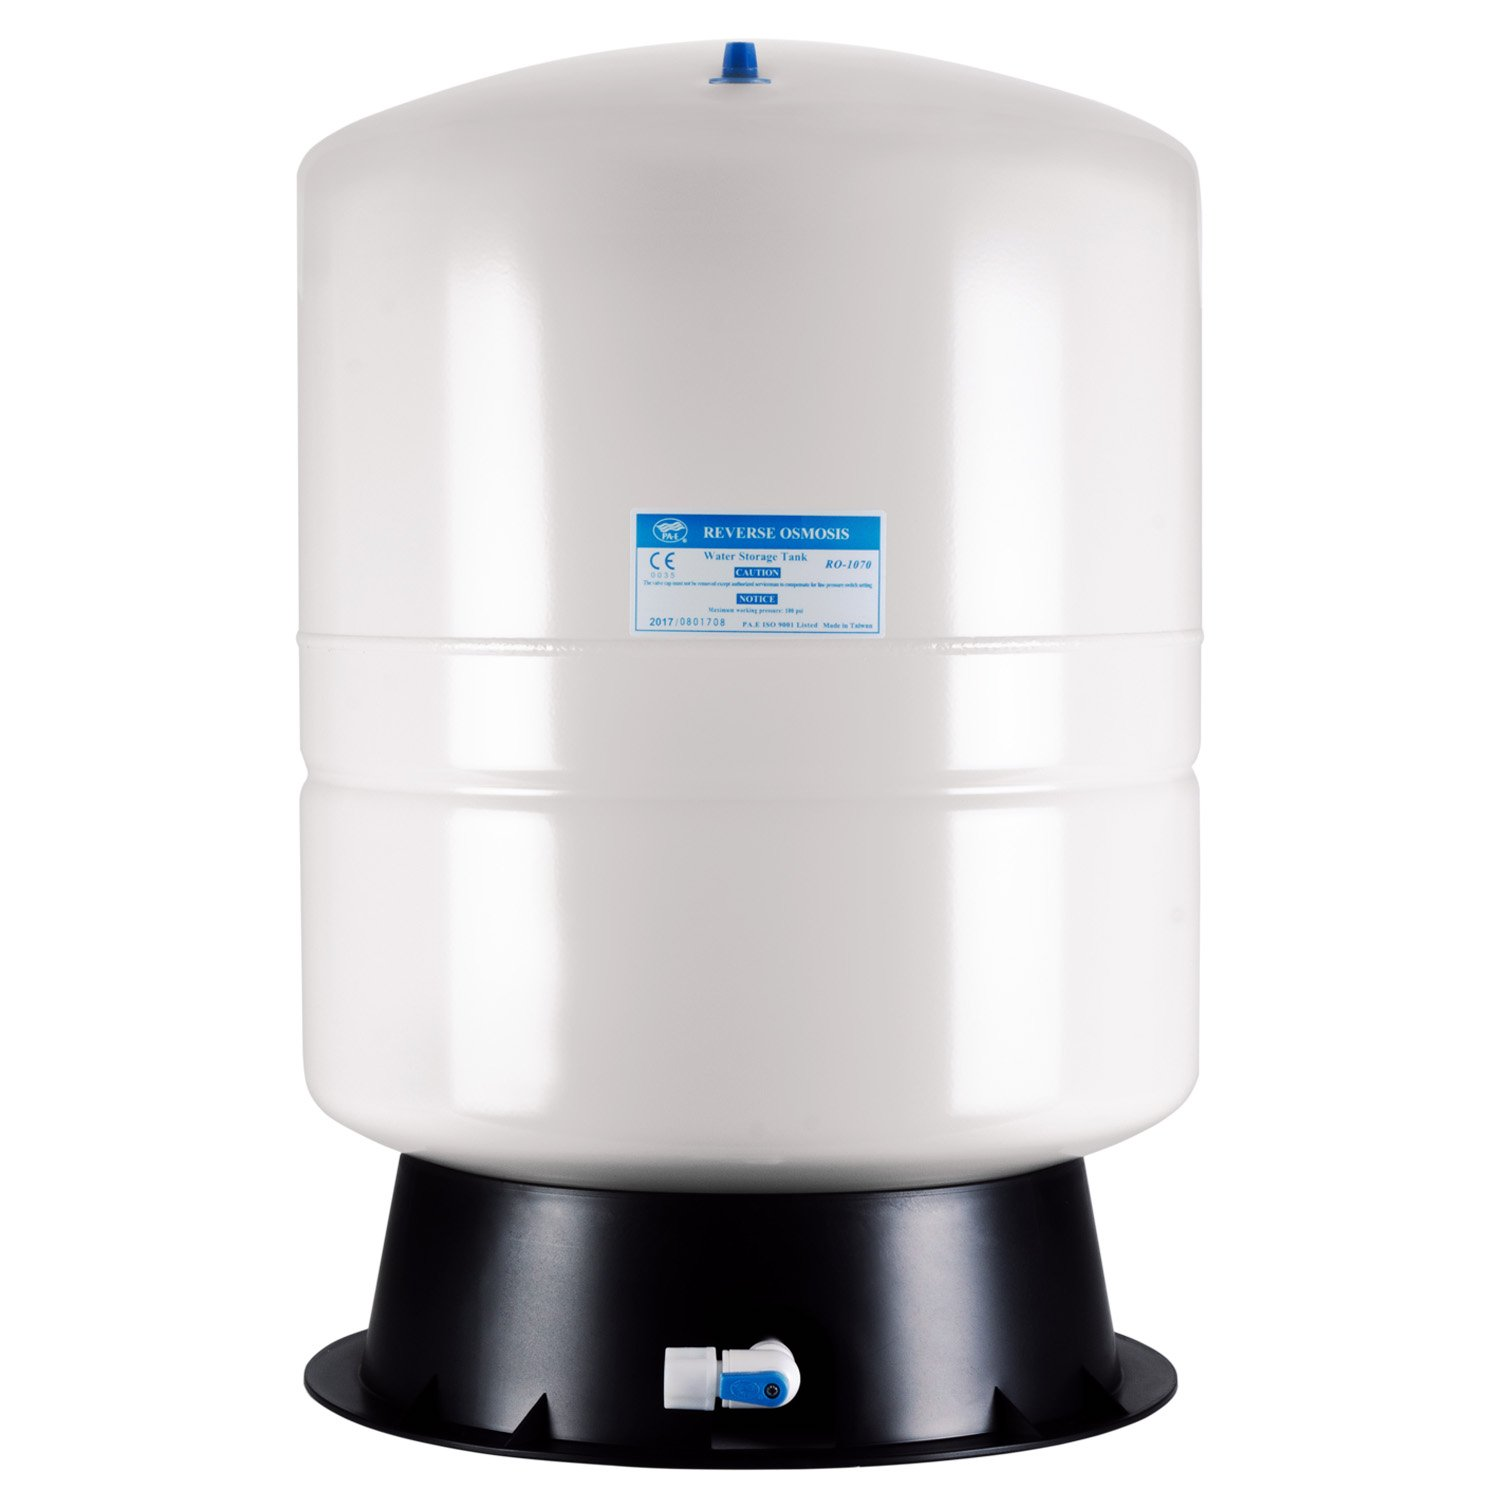 iSpring T11M Pressurized Water Storage Tank for Well and Reverse Osmosis RO Systems 11 Gallon by iSpring